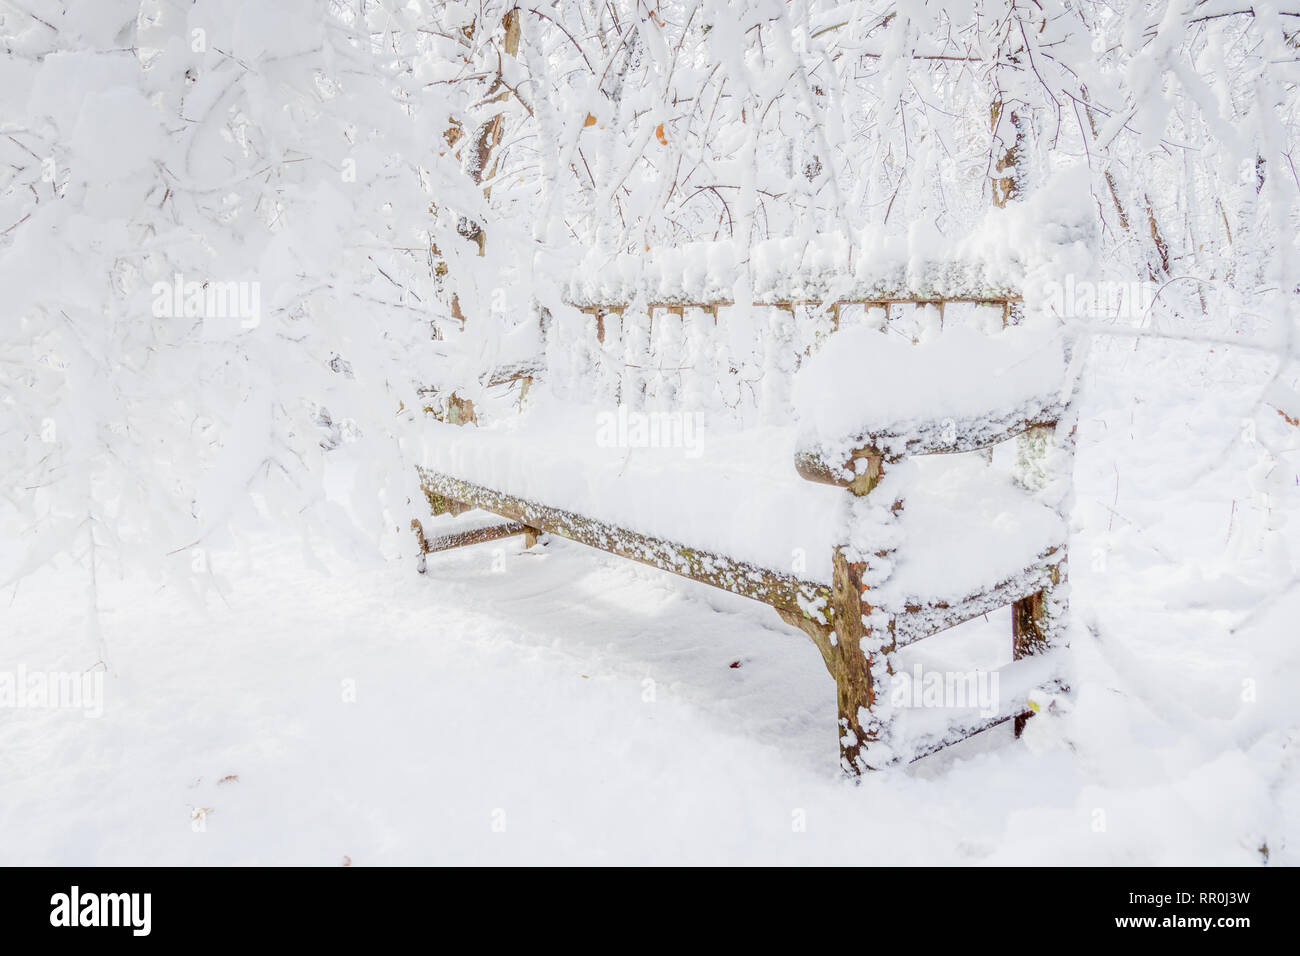 Bench covered in snow - Stock Image